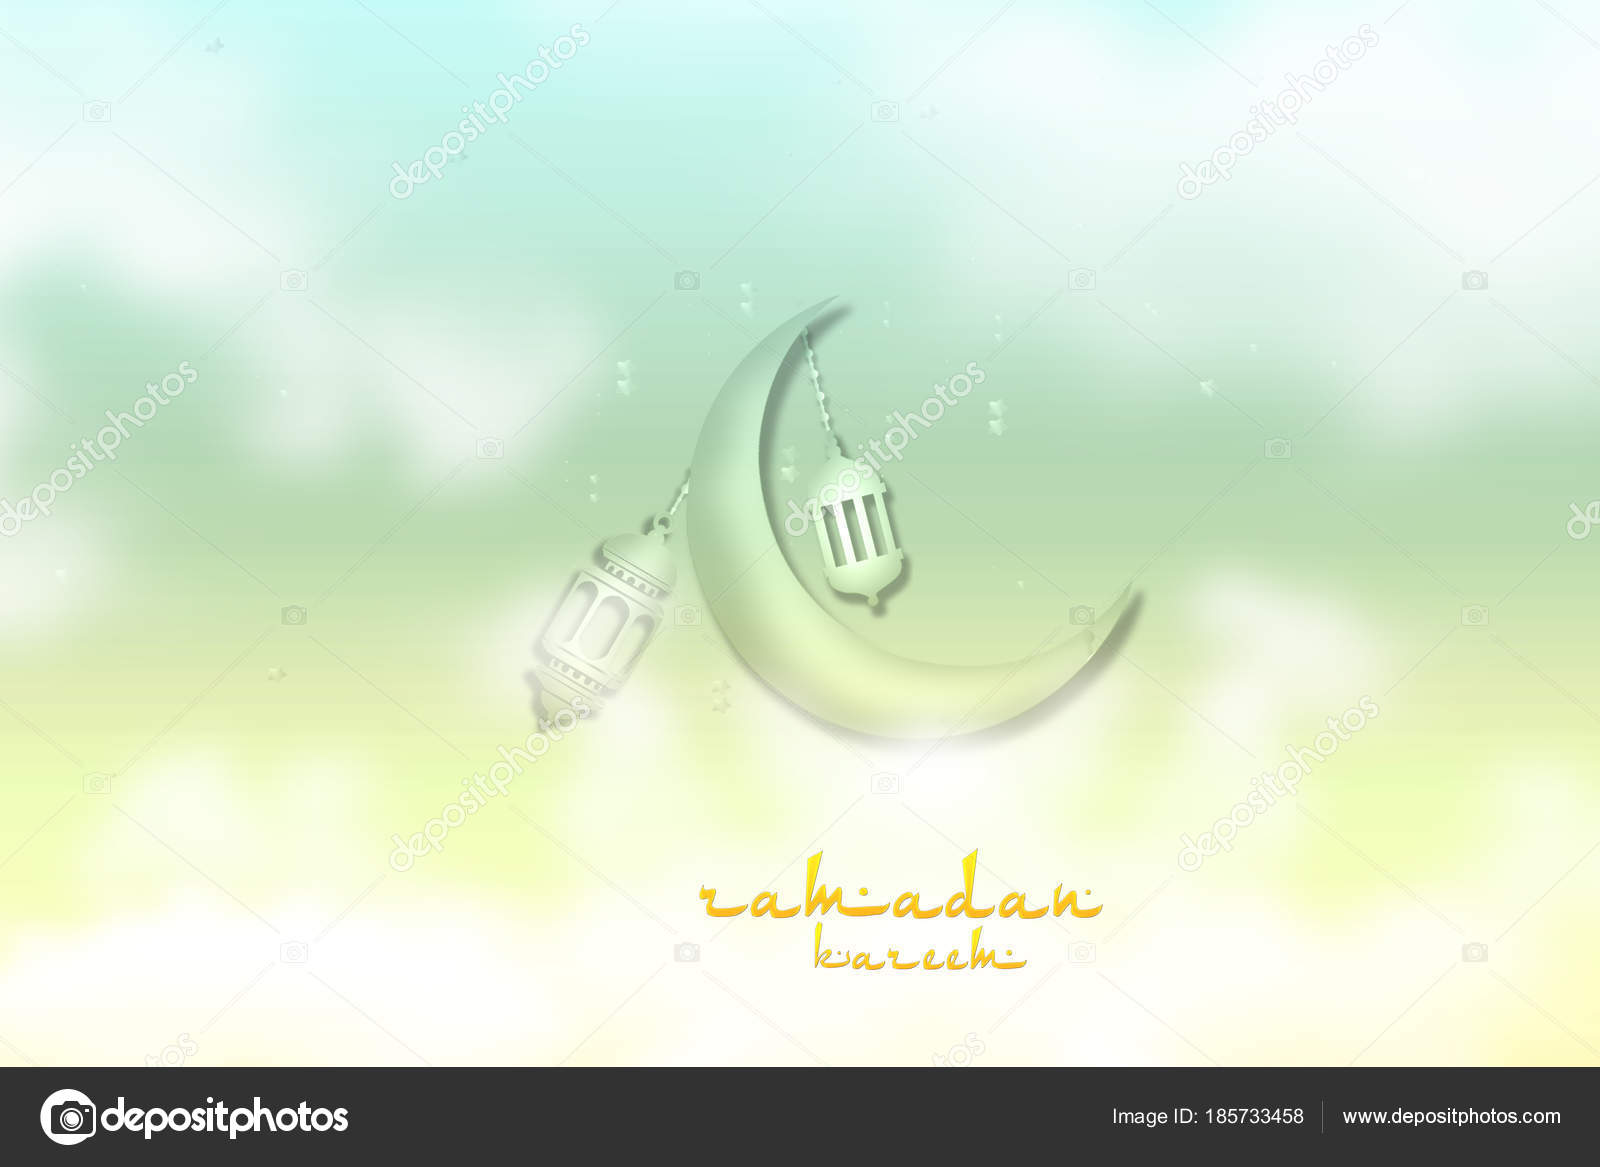 eid mubarak design background illustration designs for greeting card poster and banner stock photo c avpk 185733458 https depositphotos com 185733458 stock photo eid mubarak design background illustration html